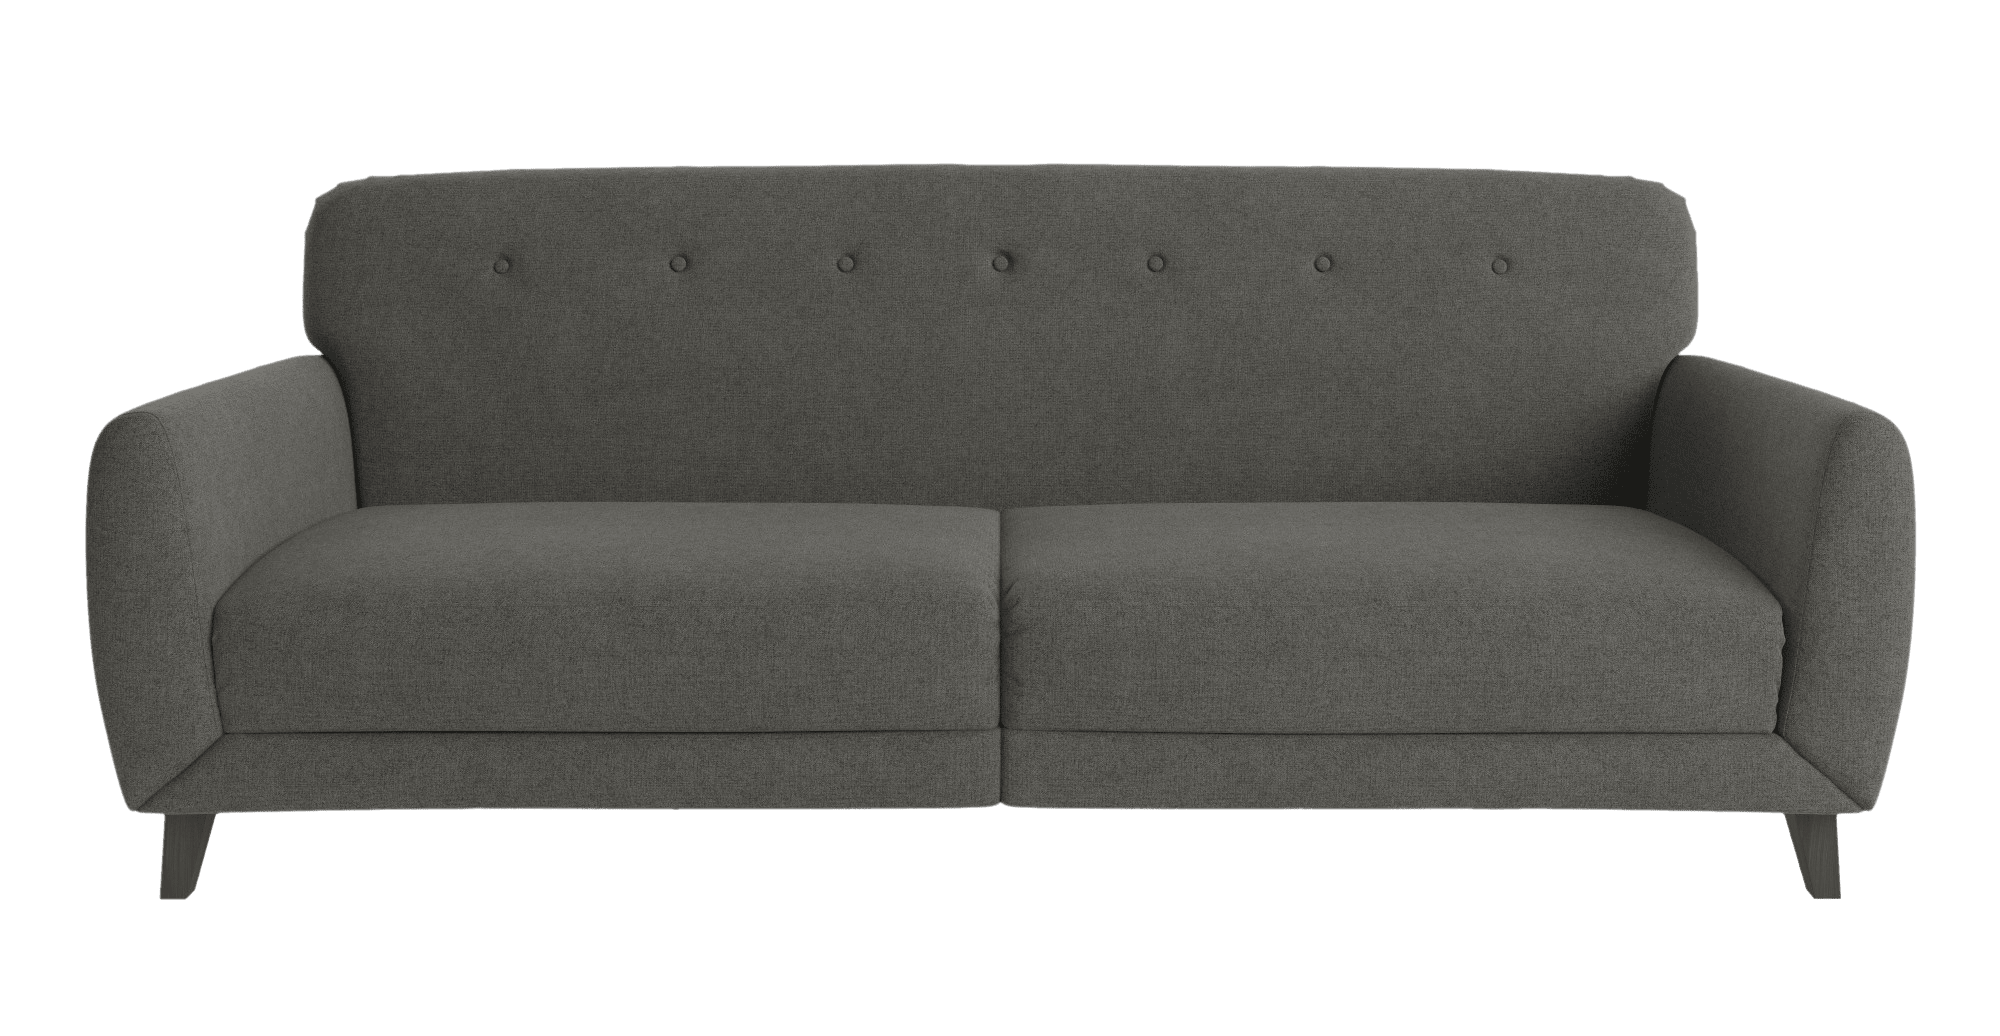 large three-seater gray couch